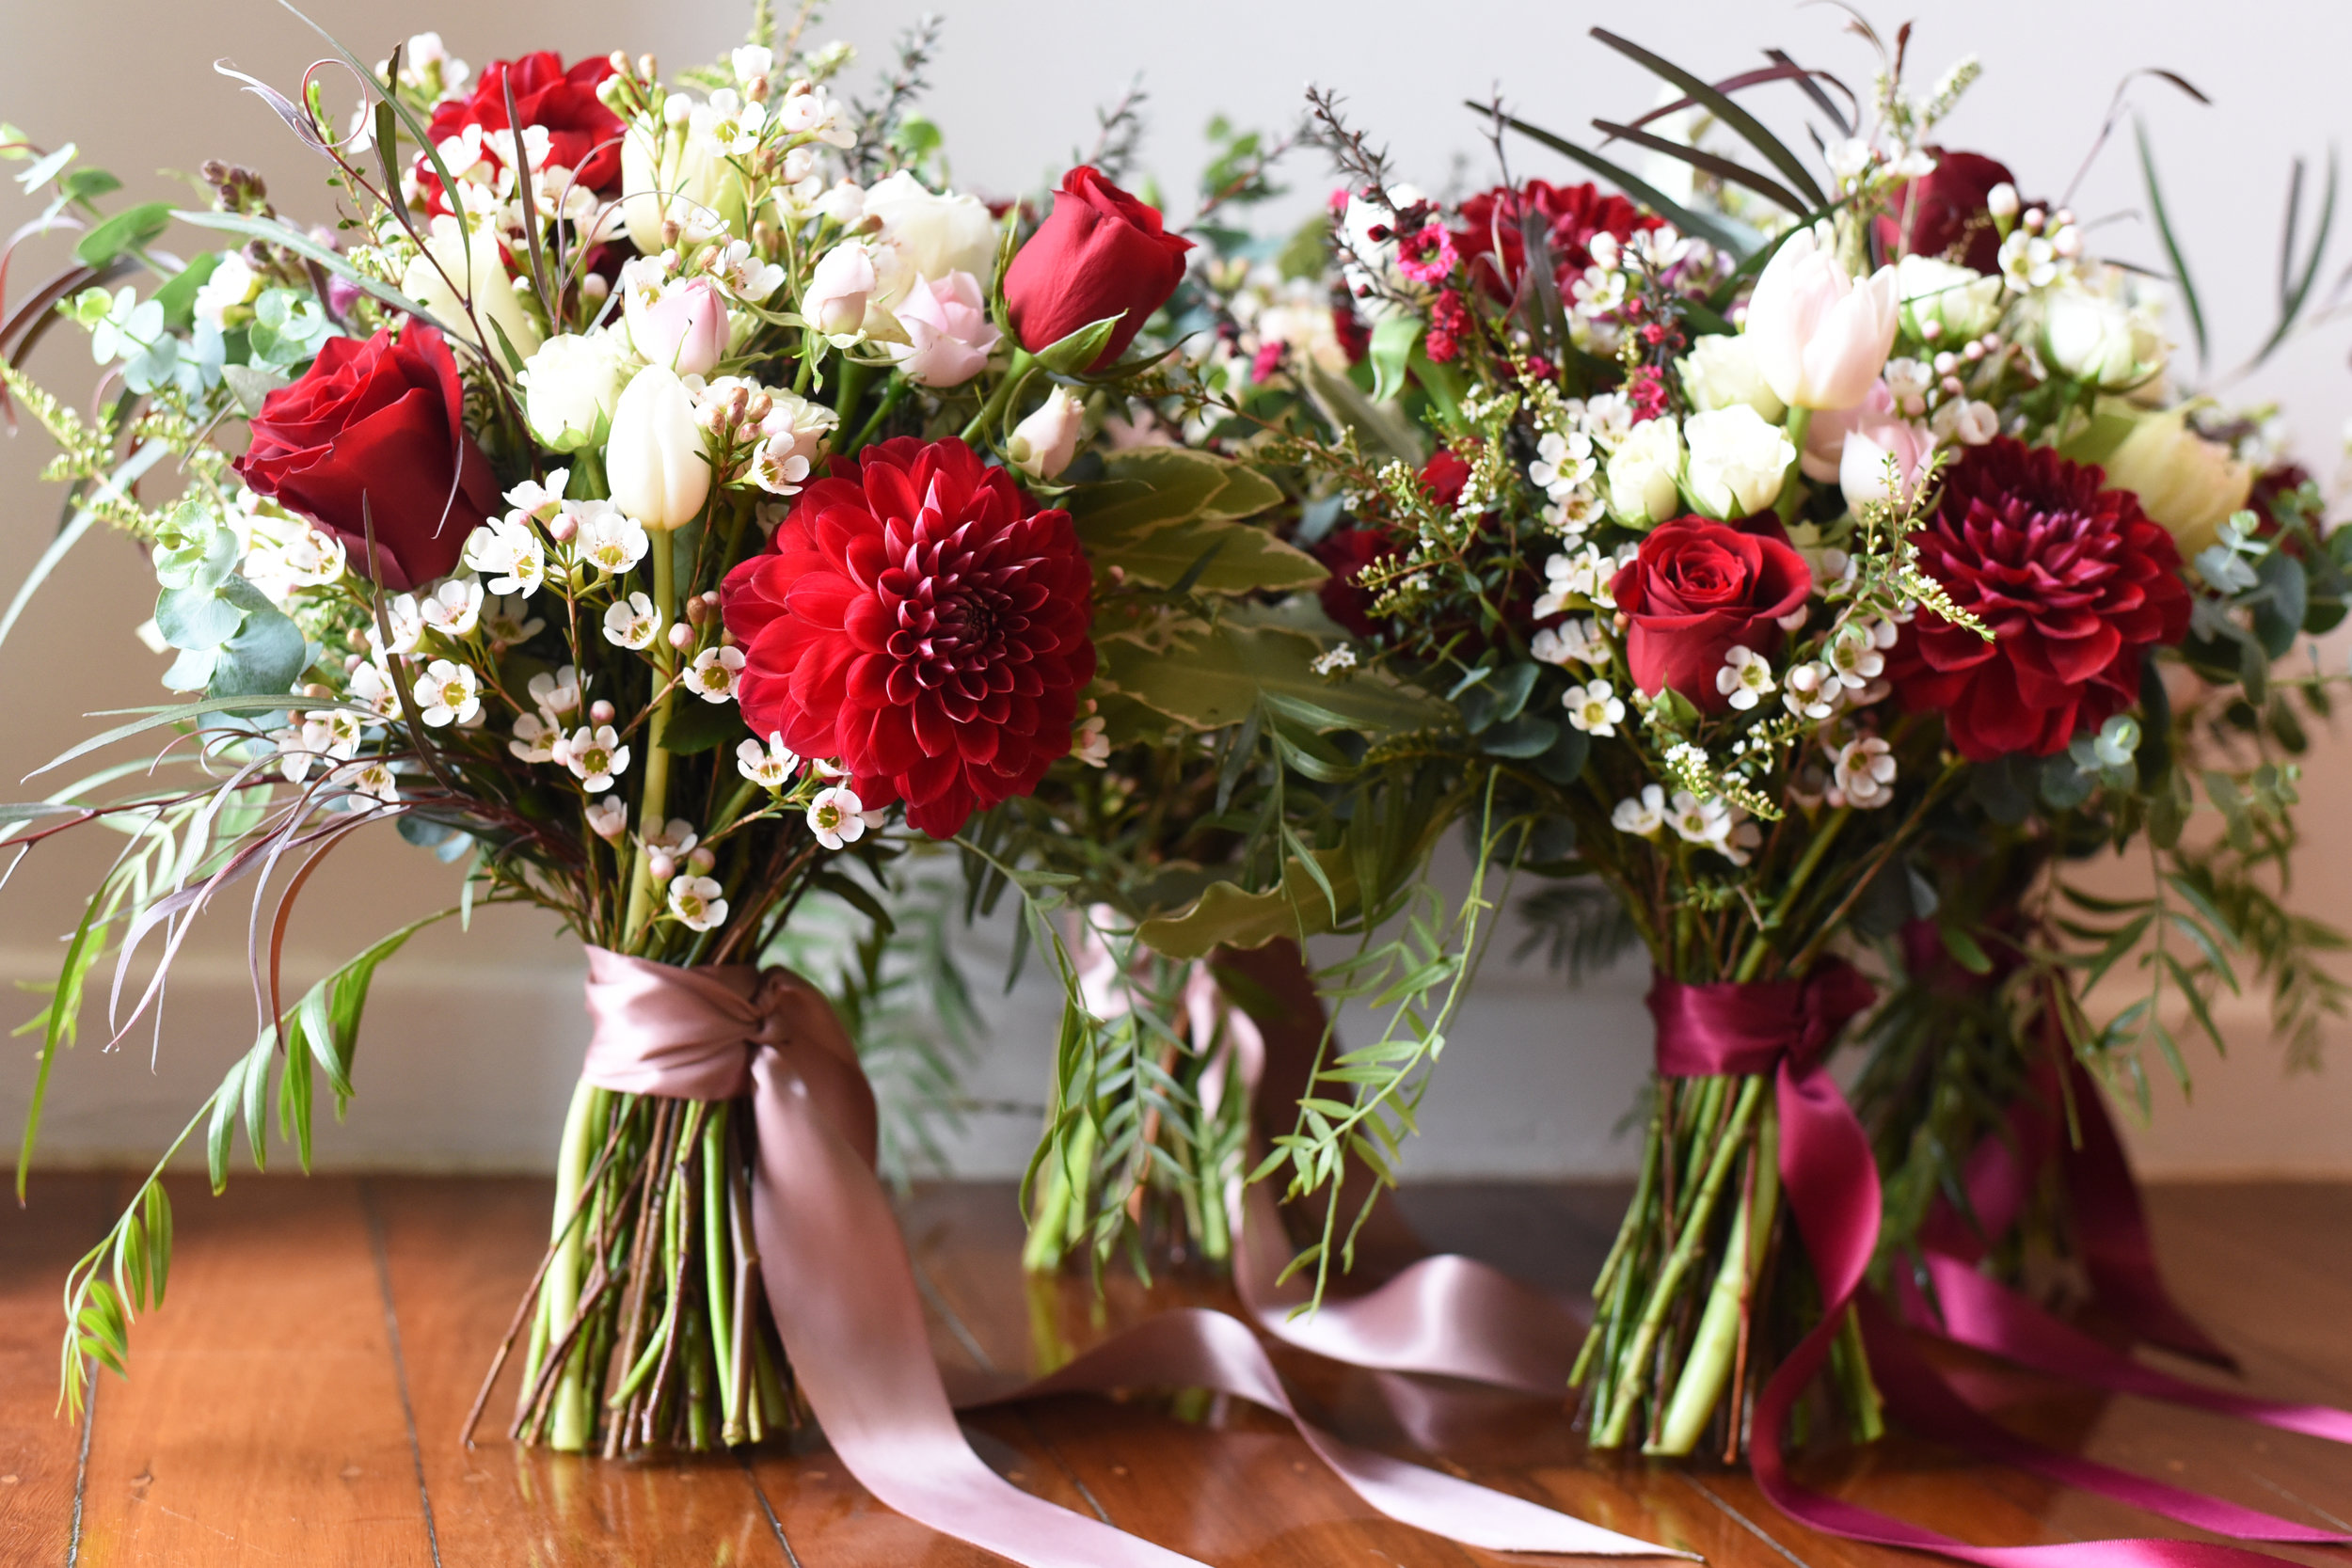 We are Fleurpot! - Floral styling specialising in Weddings and Events.Based in Brisbane, Australia.